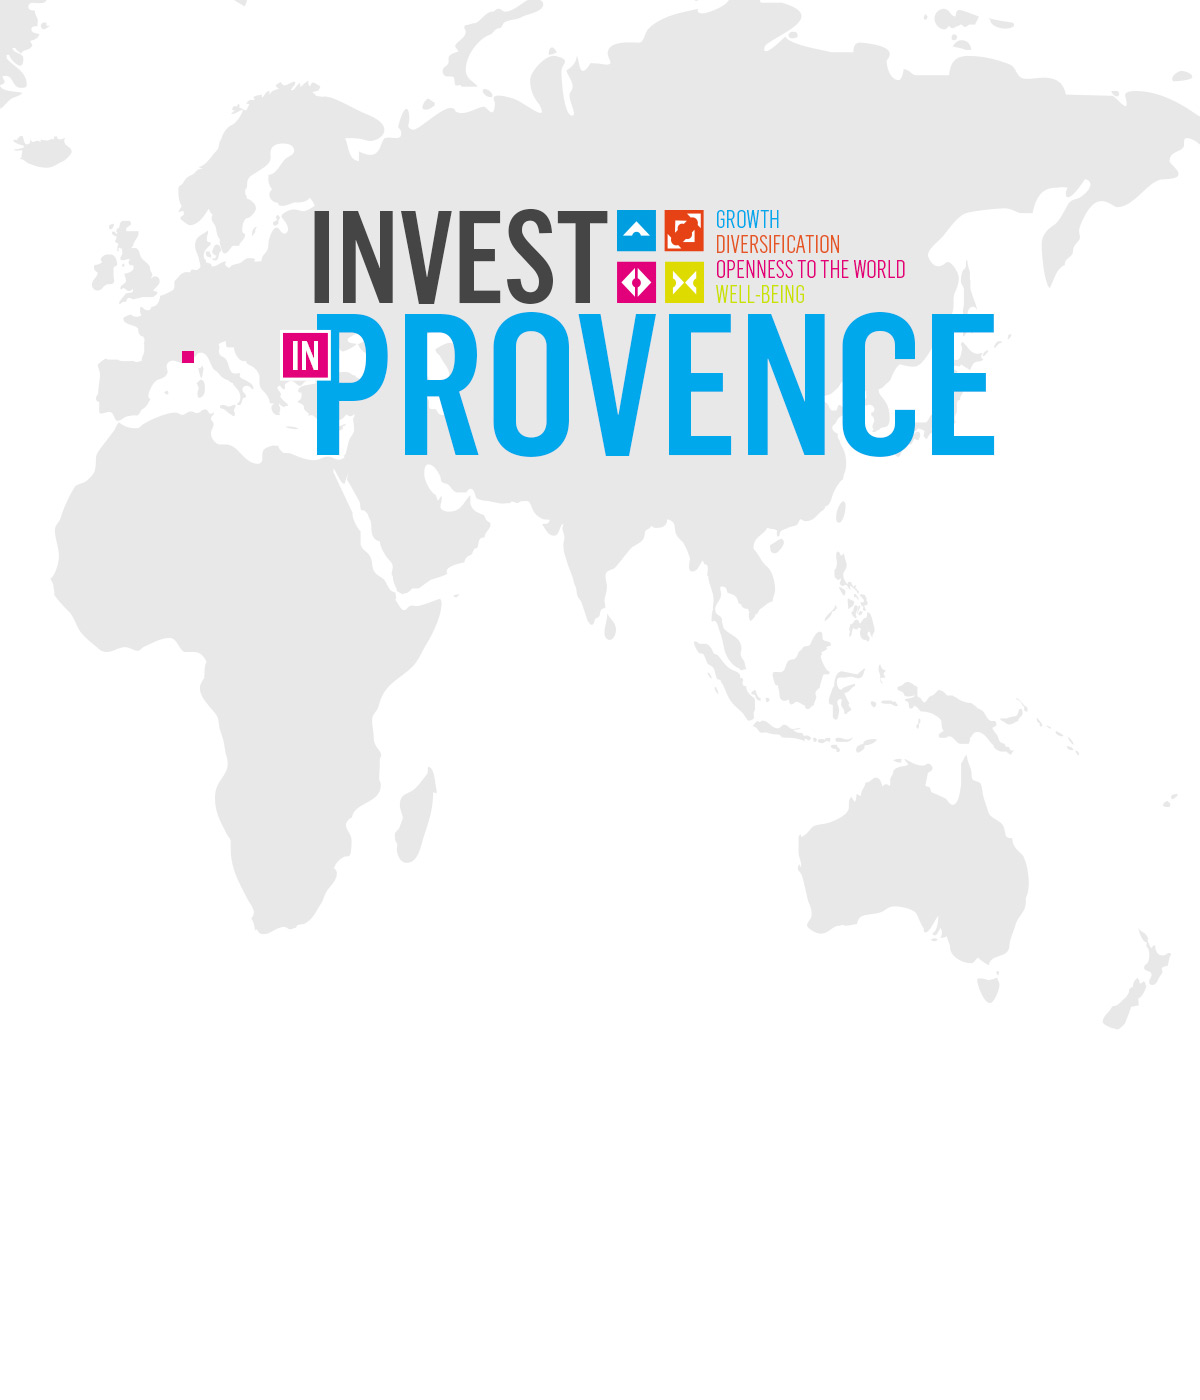 Businesses choose Aix-Marseille-Provence for its growing economy, its diversity of expertise, its openness to the world, and its quality of life.